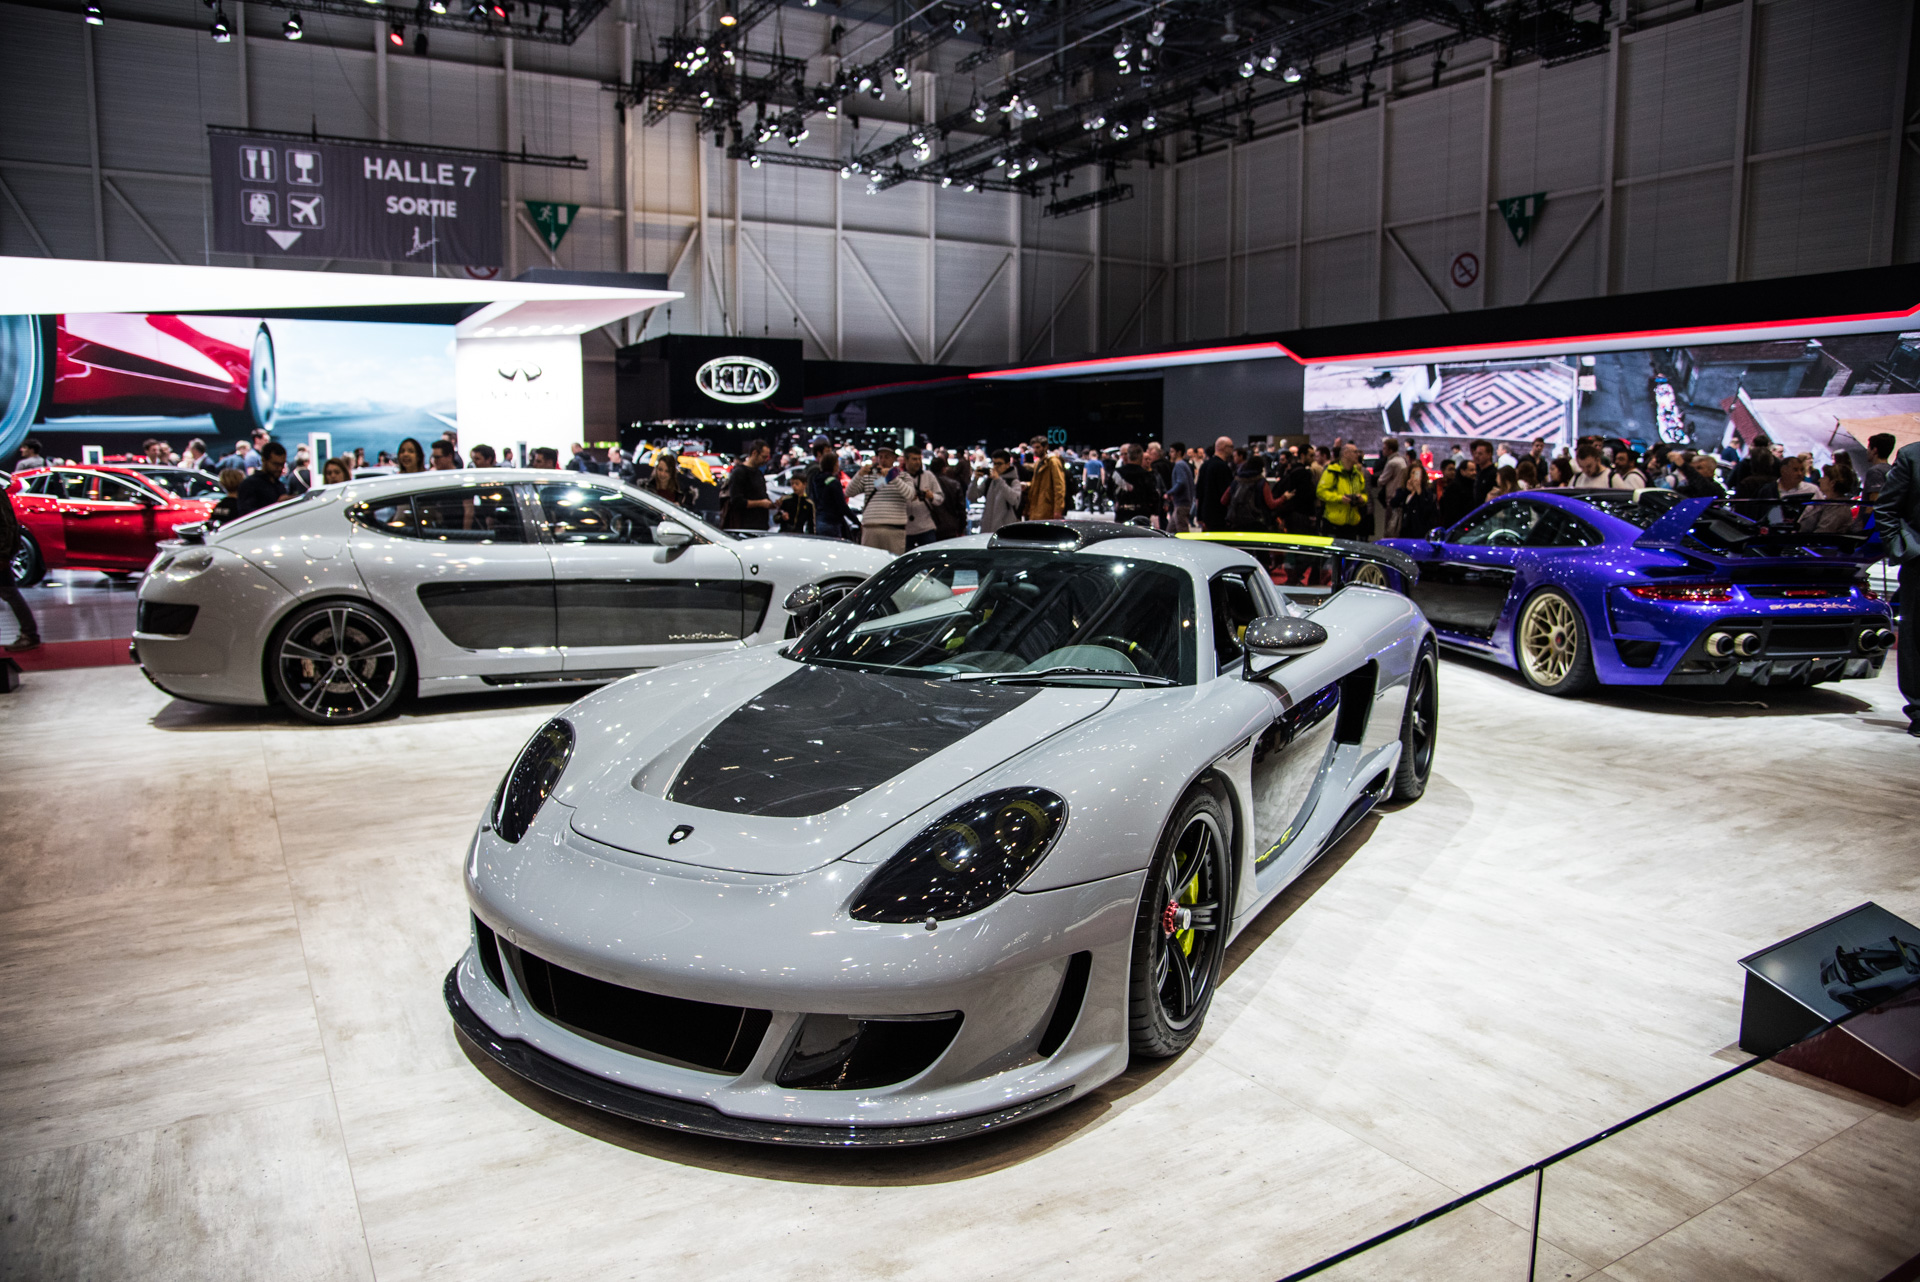 geneva-international-motor-show-igor-sinitsin-38